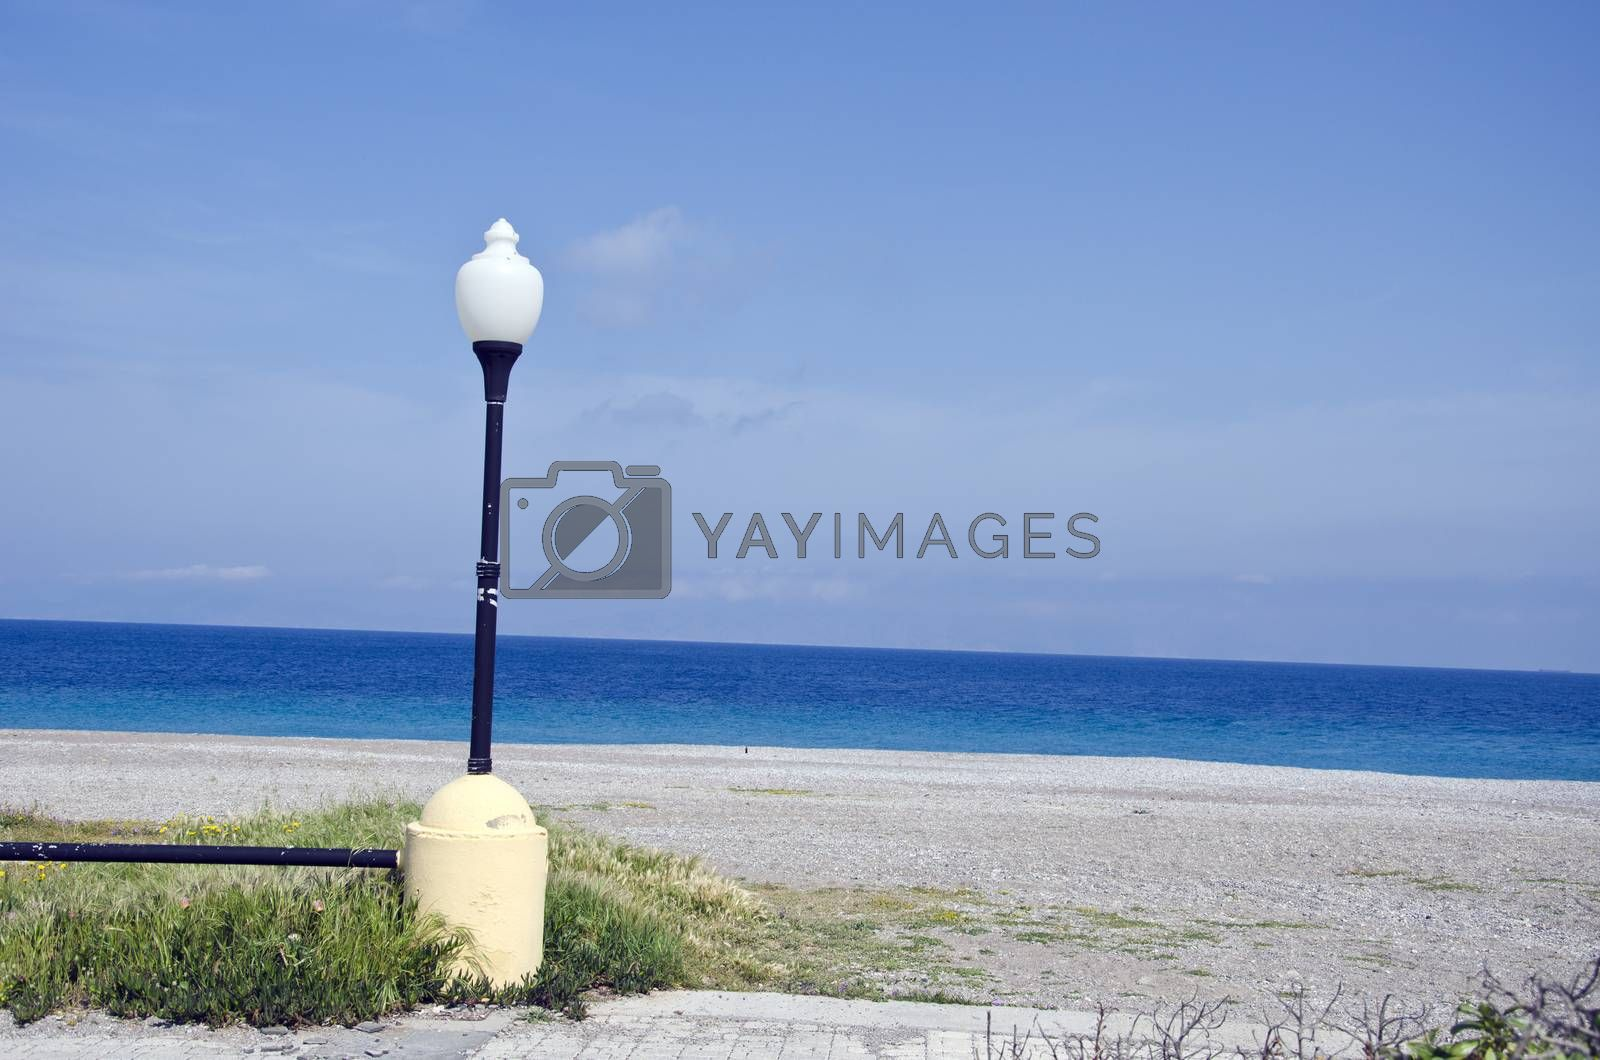 Royalty free image of beautiful resort beach with stone in Rhodes island by alis_photo